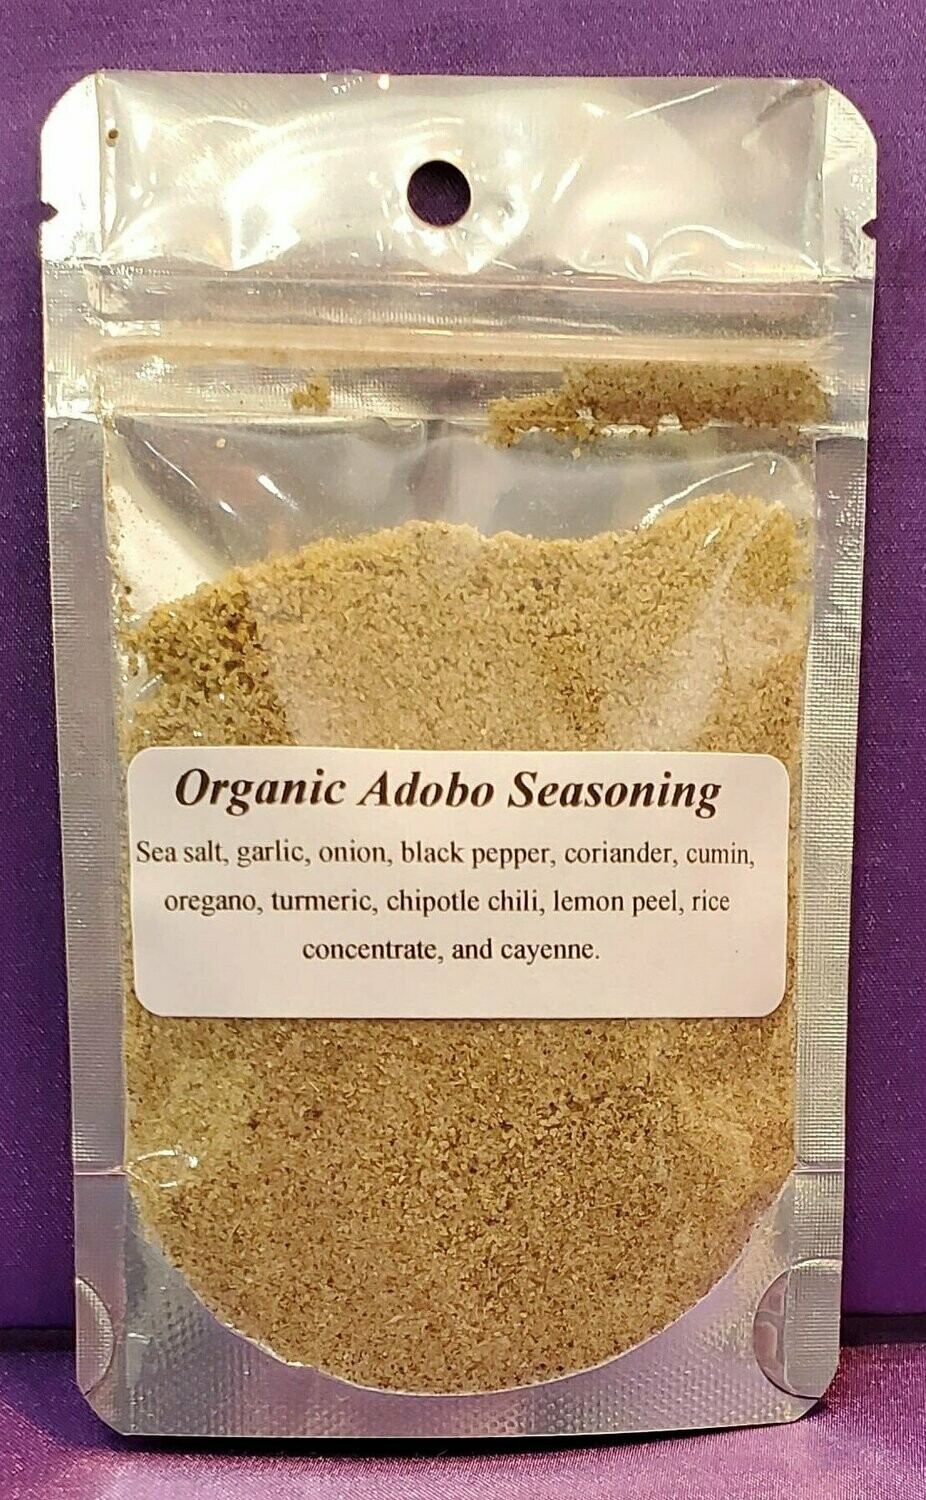 Organic Adobo Seasoning